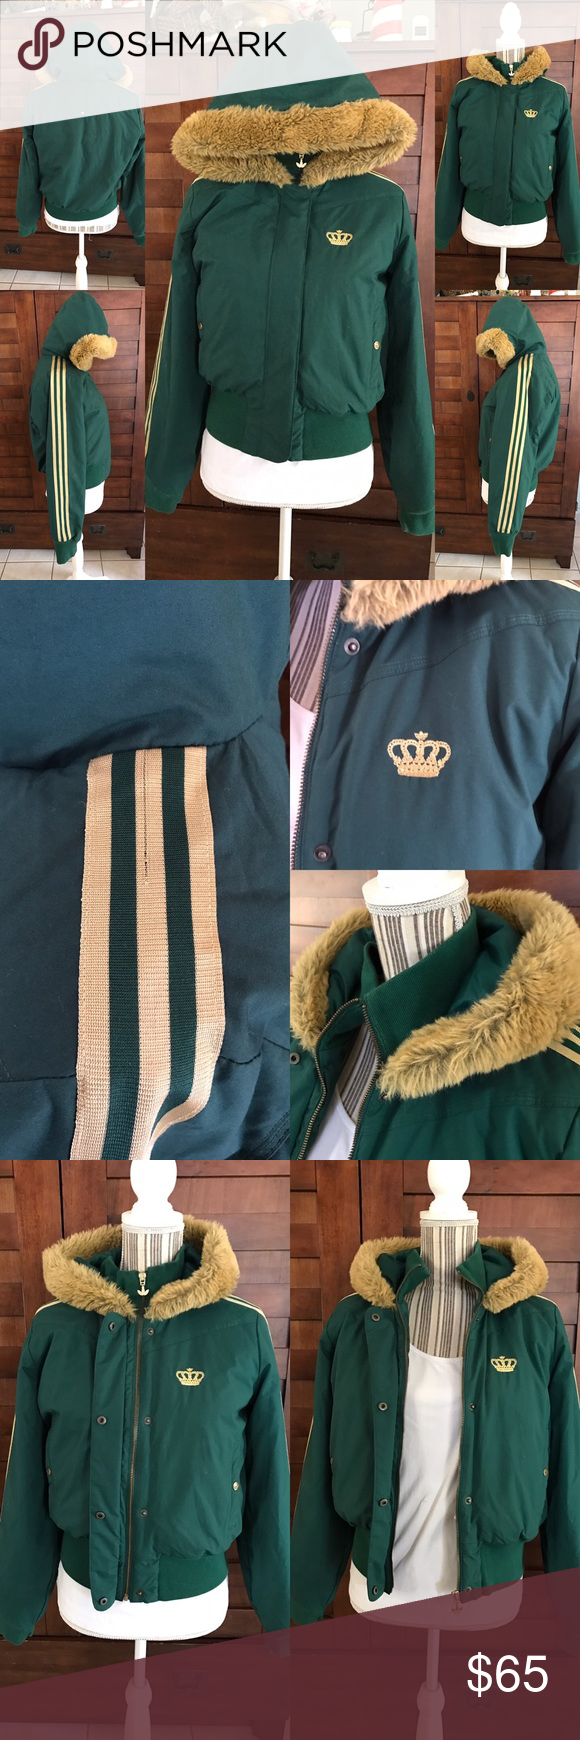 43776db8e7532e Adidas(Respect Me by Missy Elliot)Jacket   beanie Worn a few time . Still  in great shape . Green   Gold . Has some unraveling in the gold adidas  stripes ...